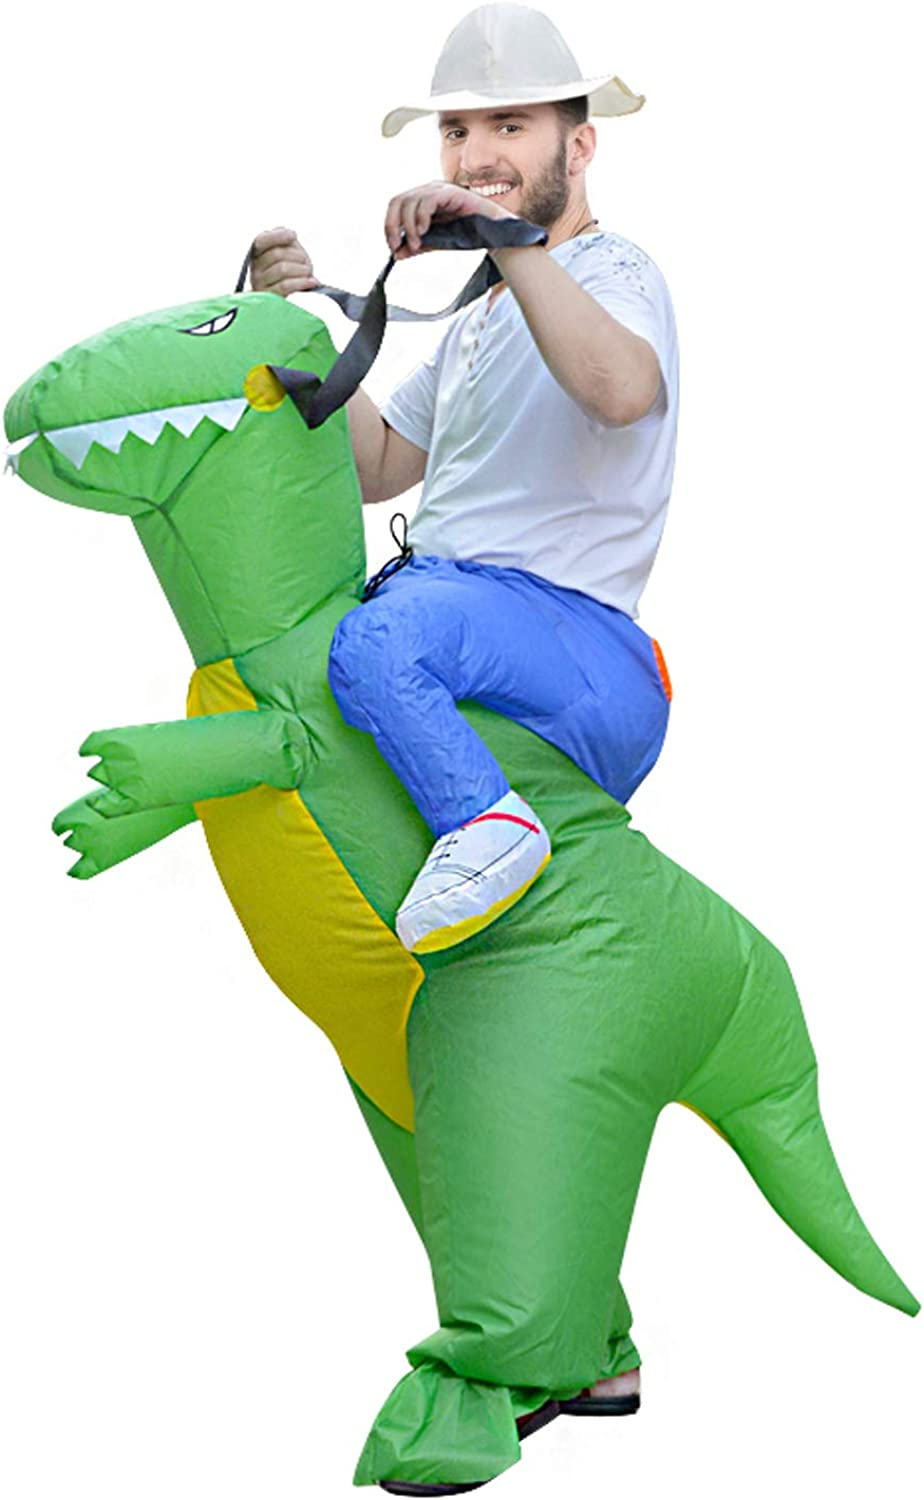 MH ZONE Inflatable Dinosaur Costumes for Adult, Adult Funny Halloween Costumes T-Rex Costume Adult Size Dinosaur Suit (Adult Dinosaur)